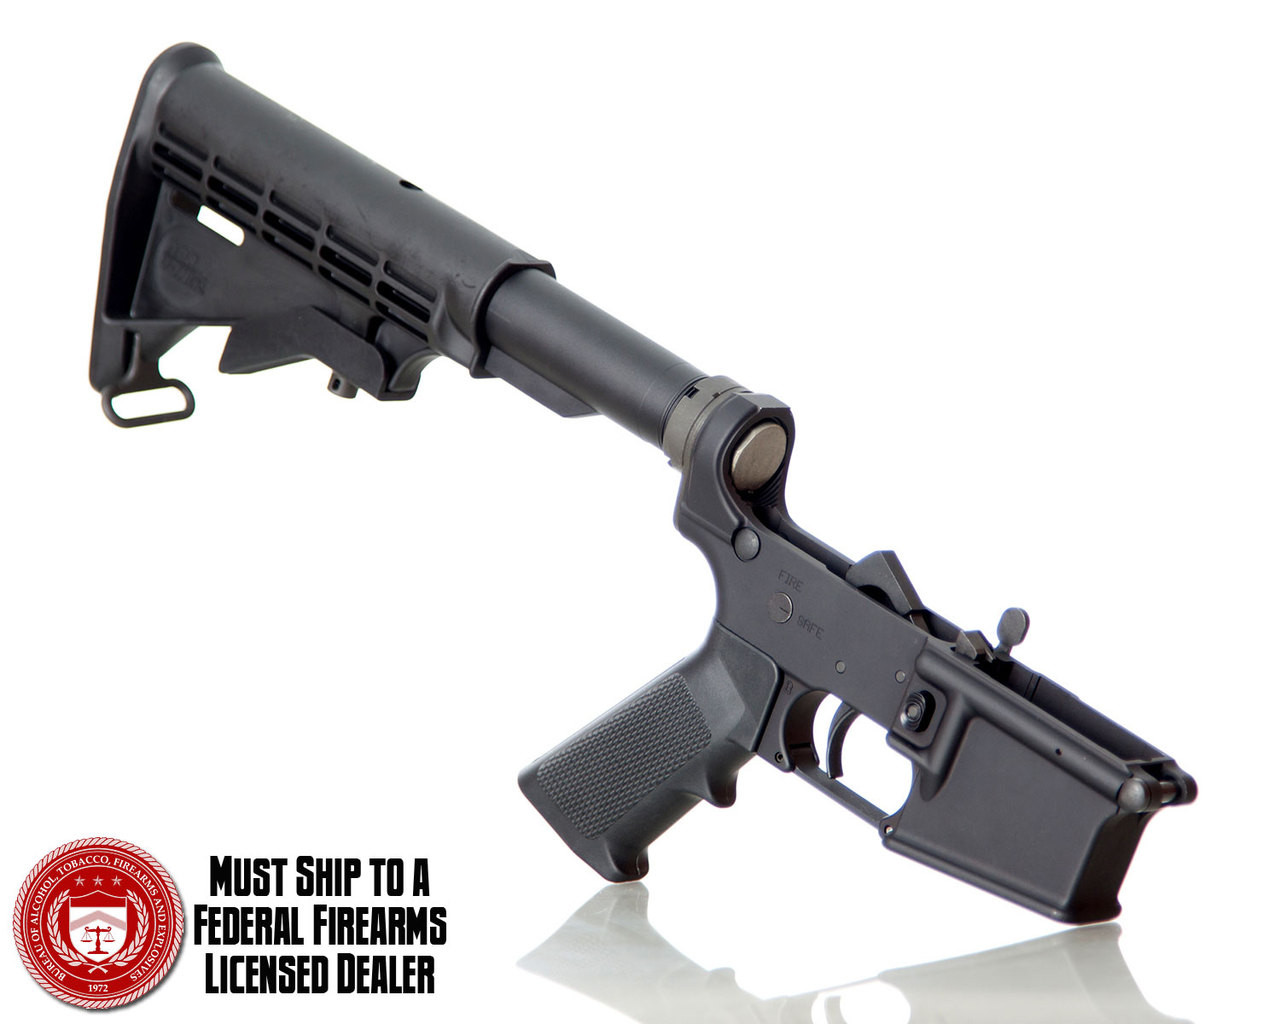 APF AR15/M16 LOWER RECEIVER ASSEMBLY